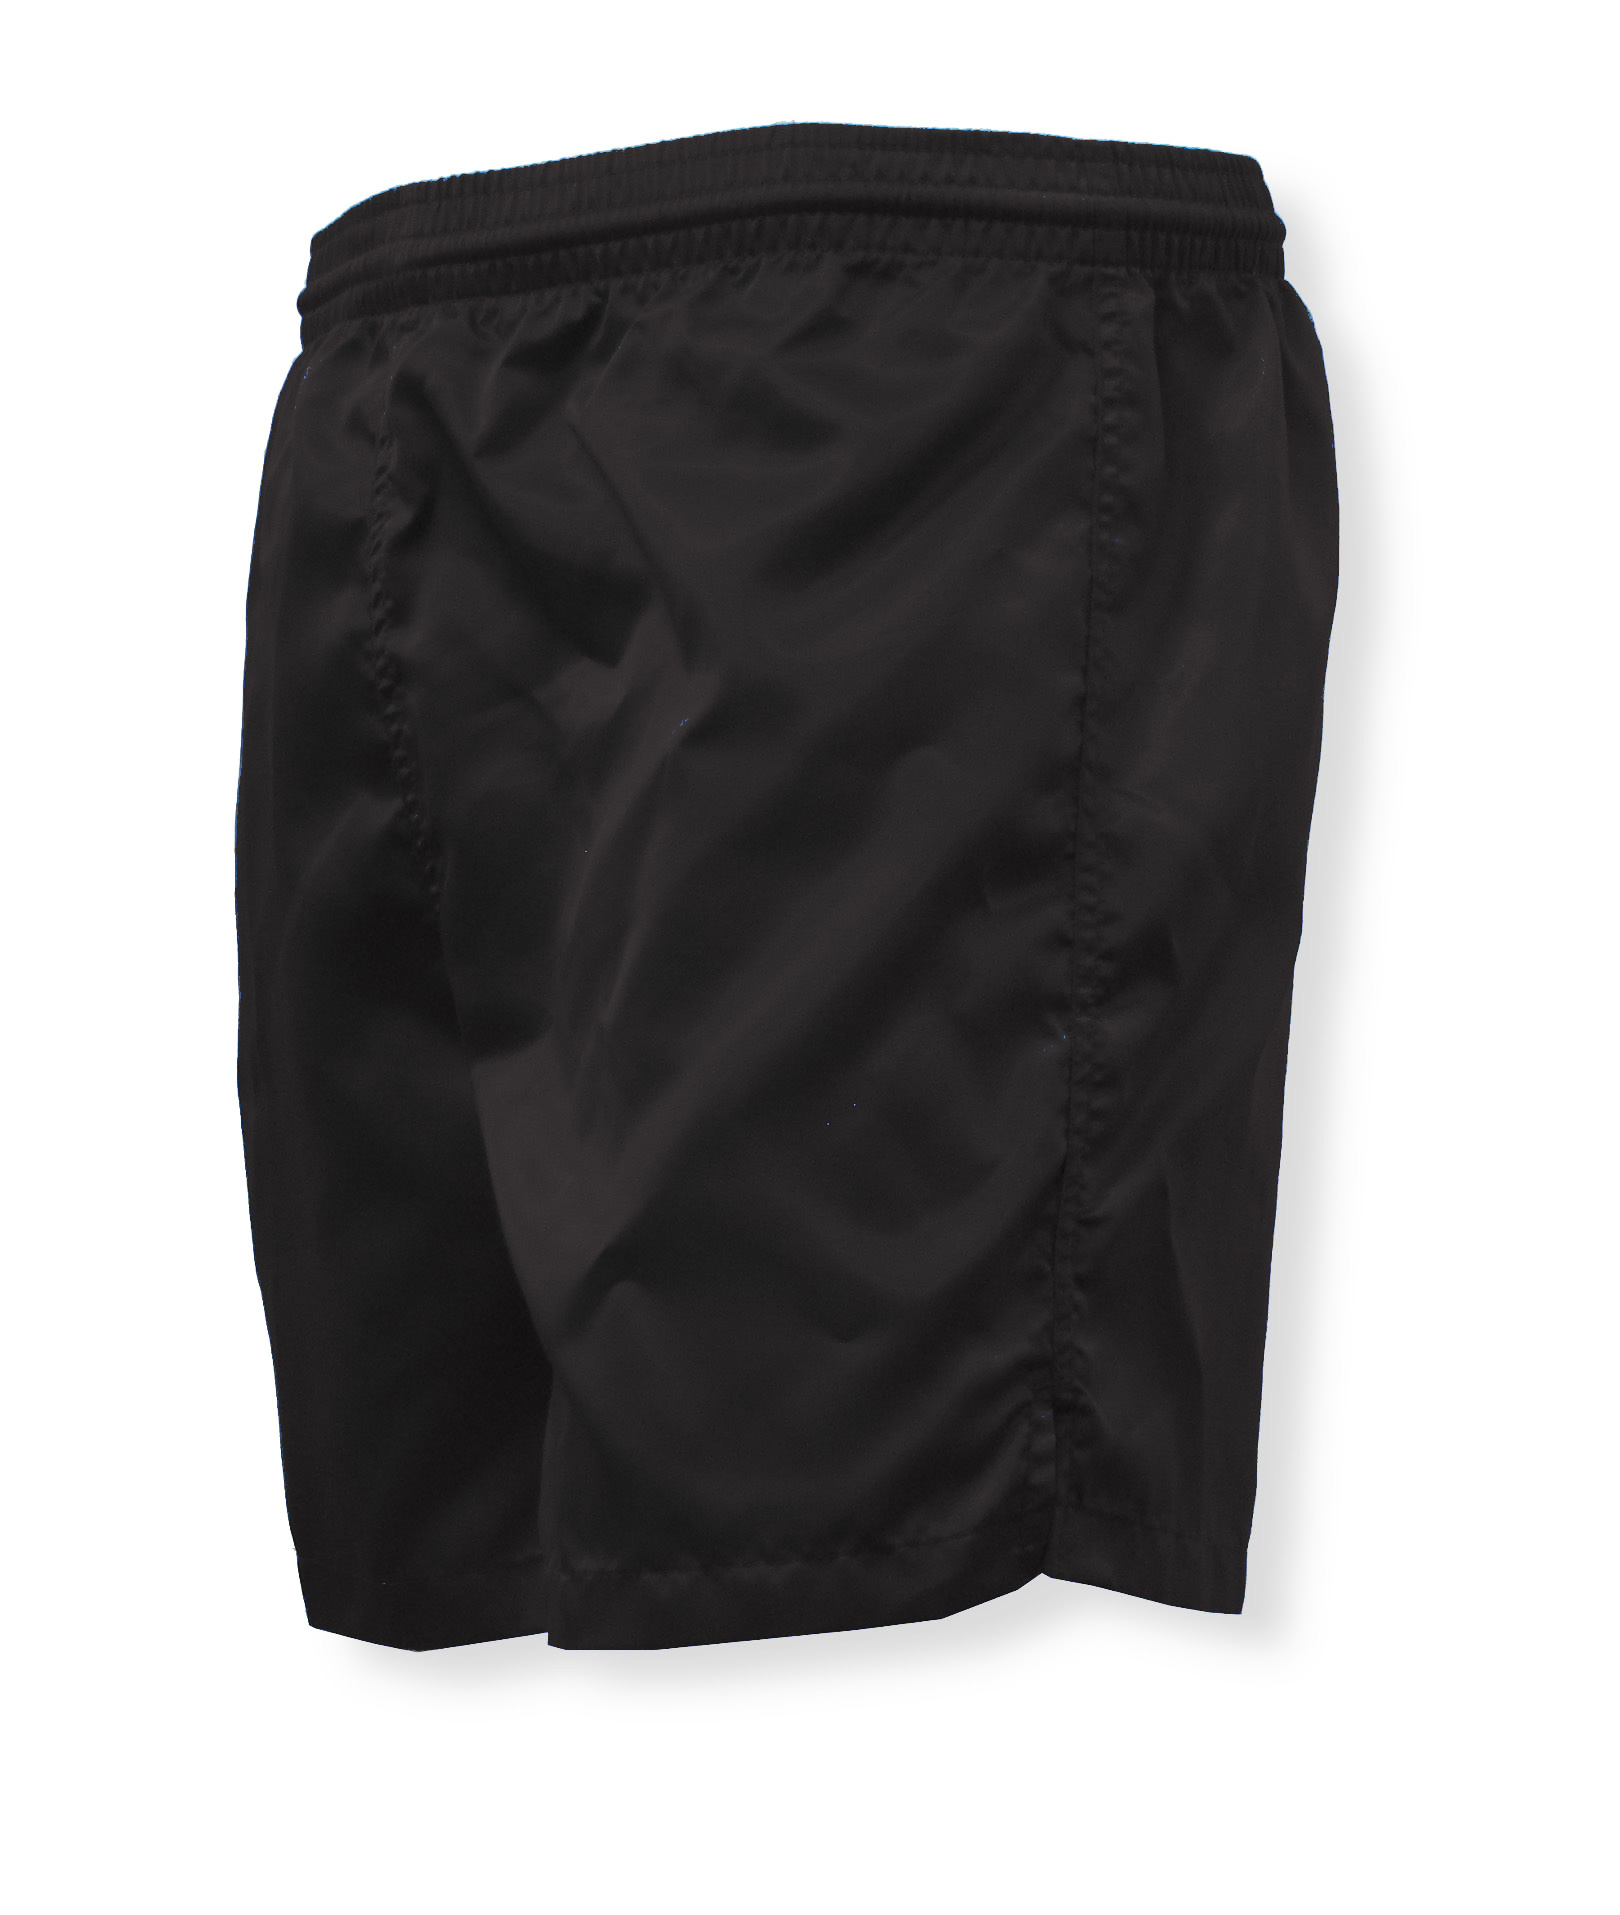 Olympic nylon satin shorts in black by Code Four Athletics